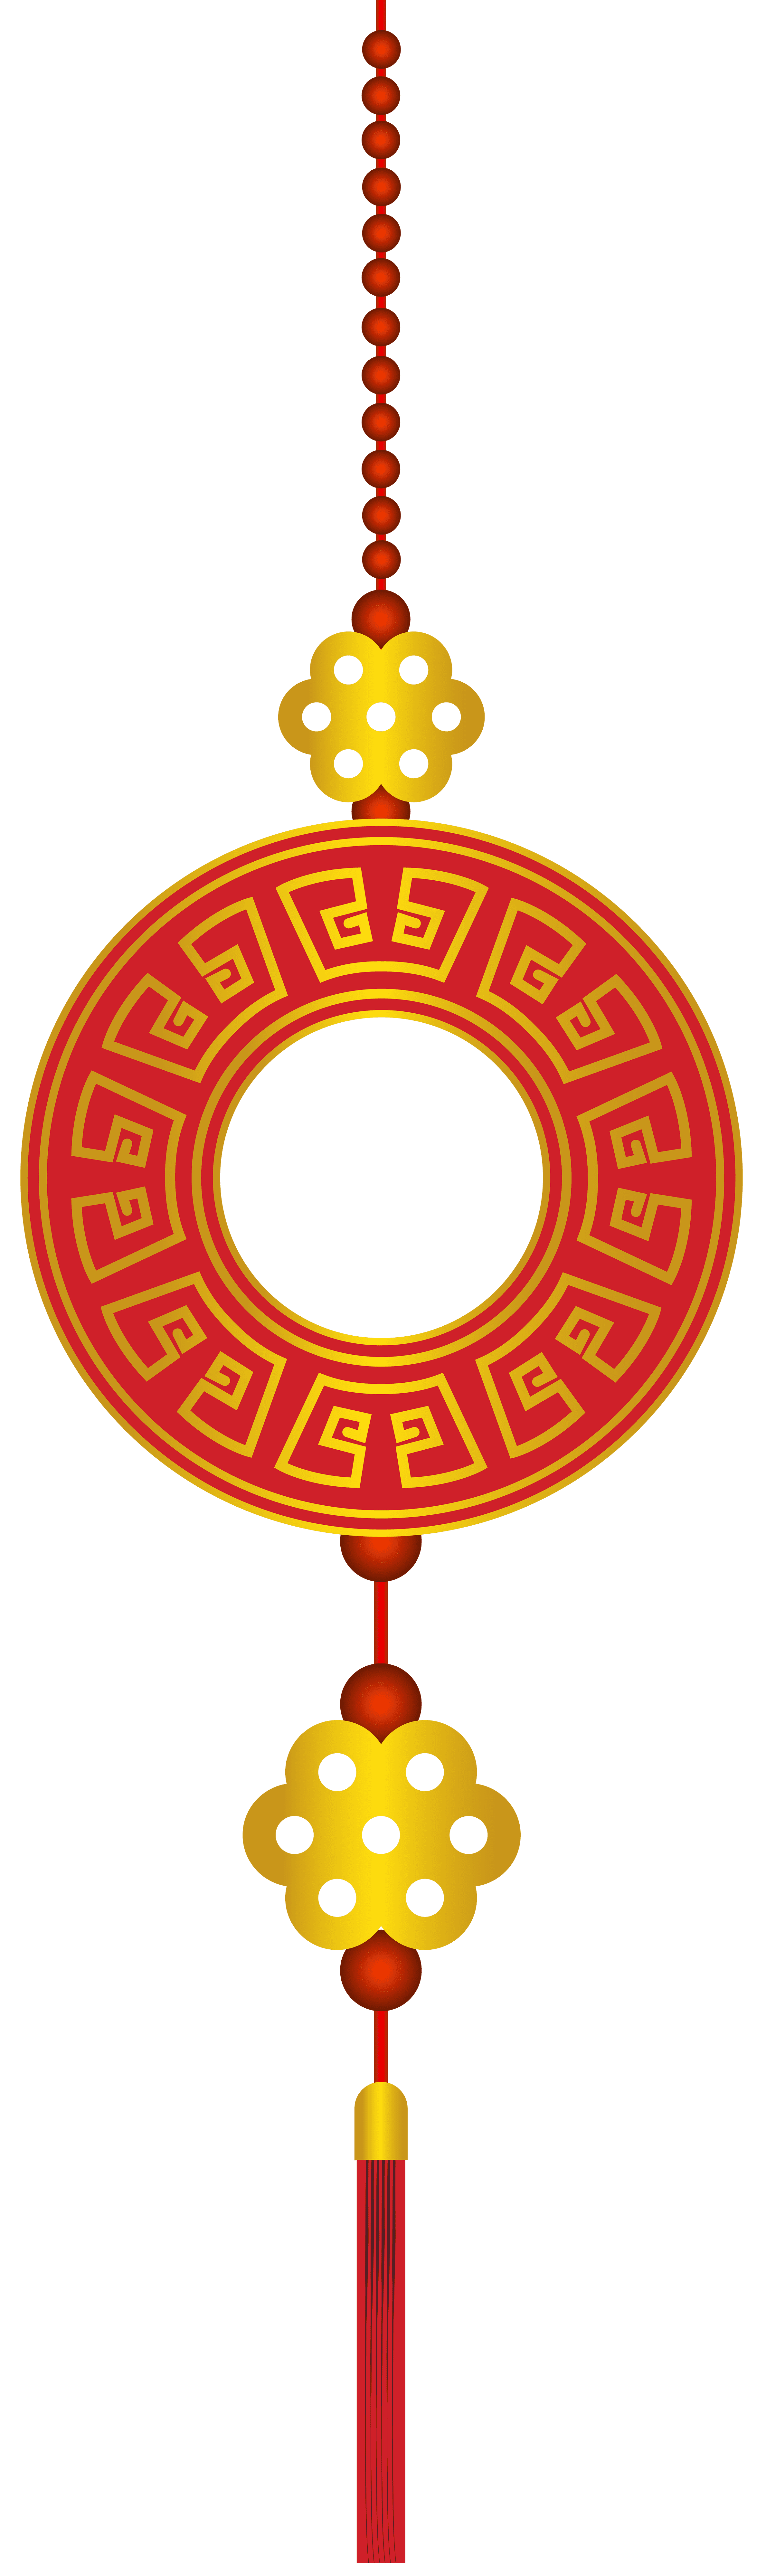 New yeard ornaments png. Chinese year decor free